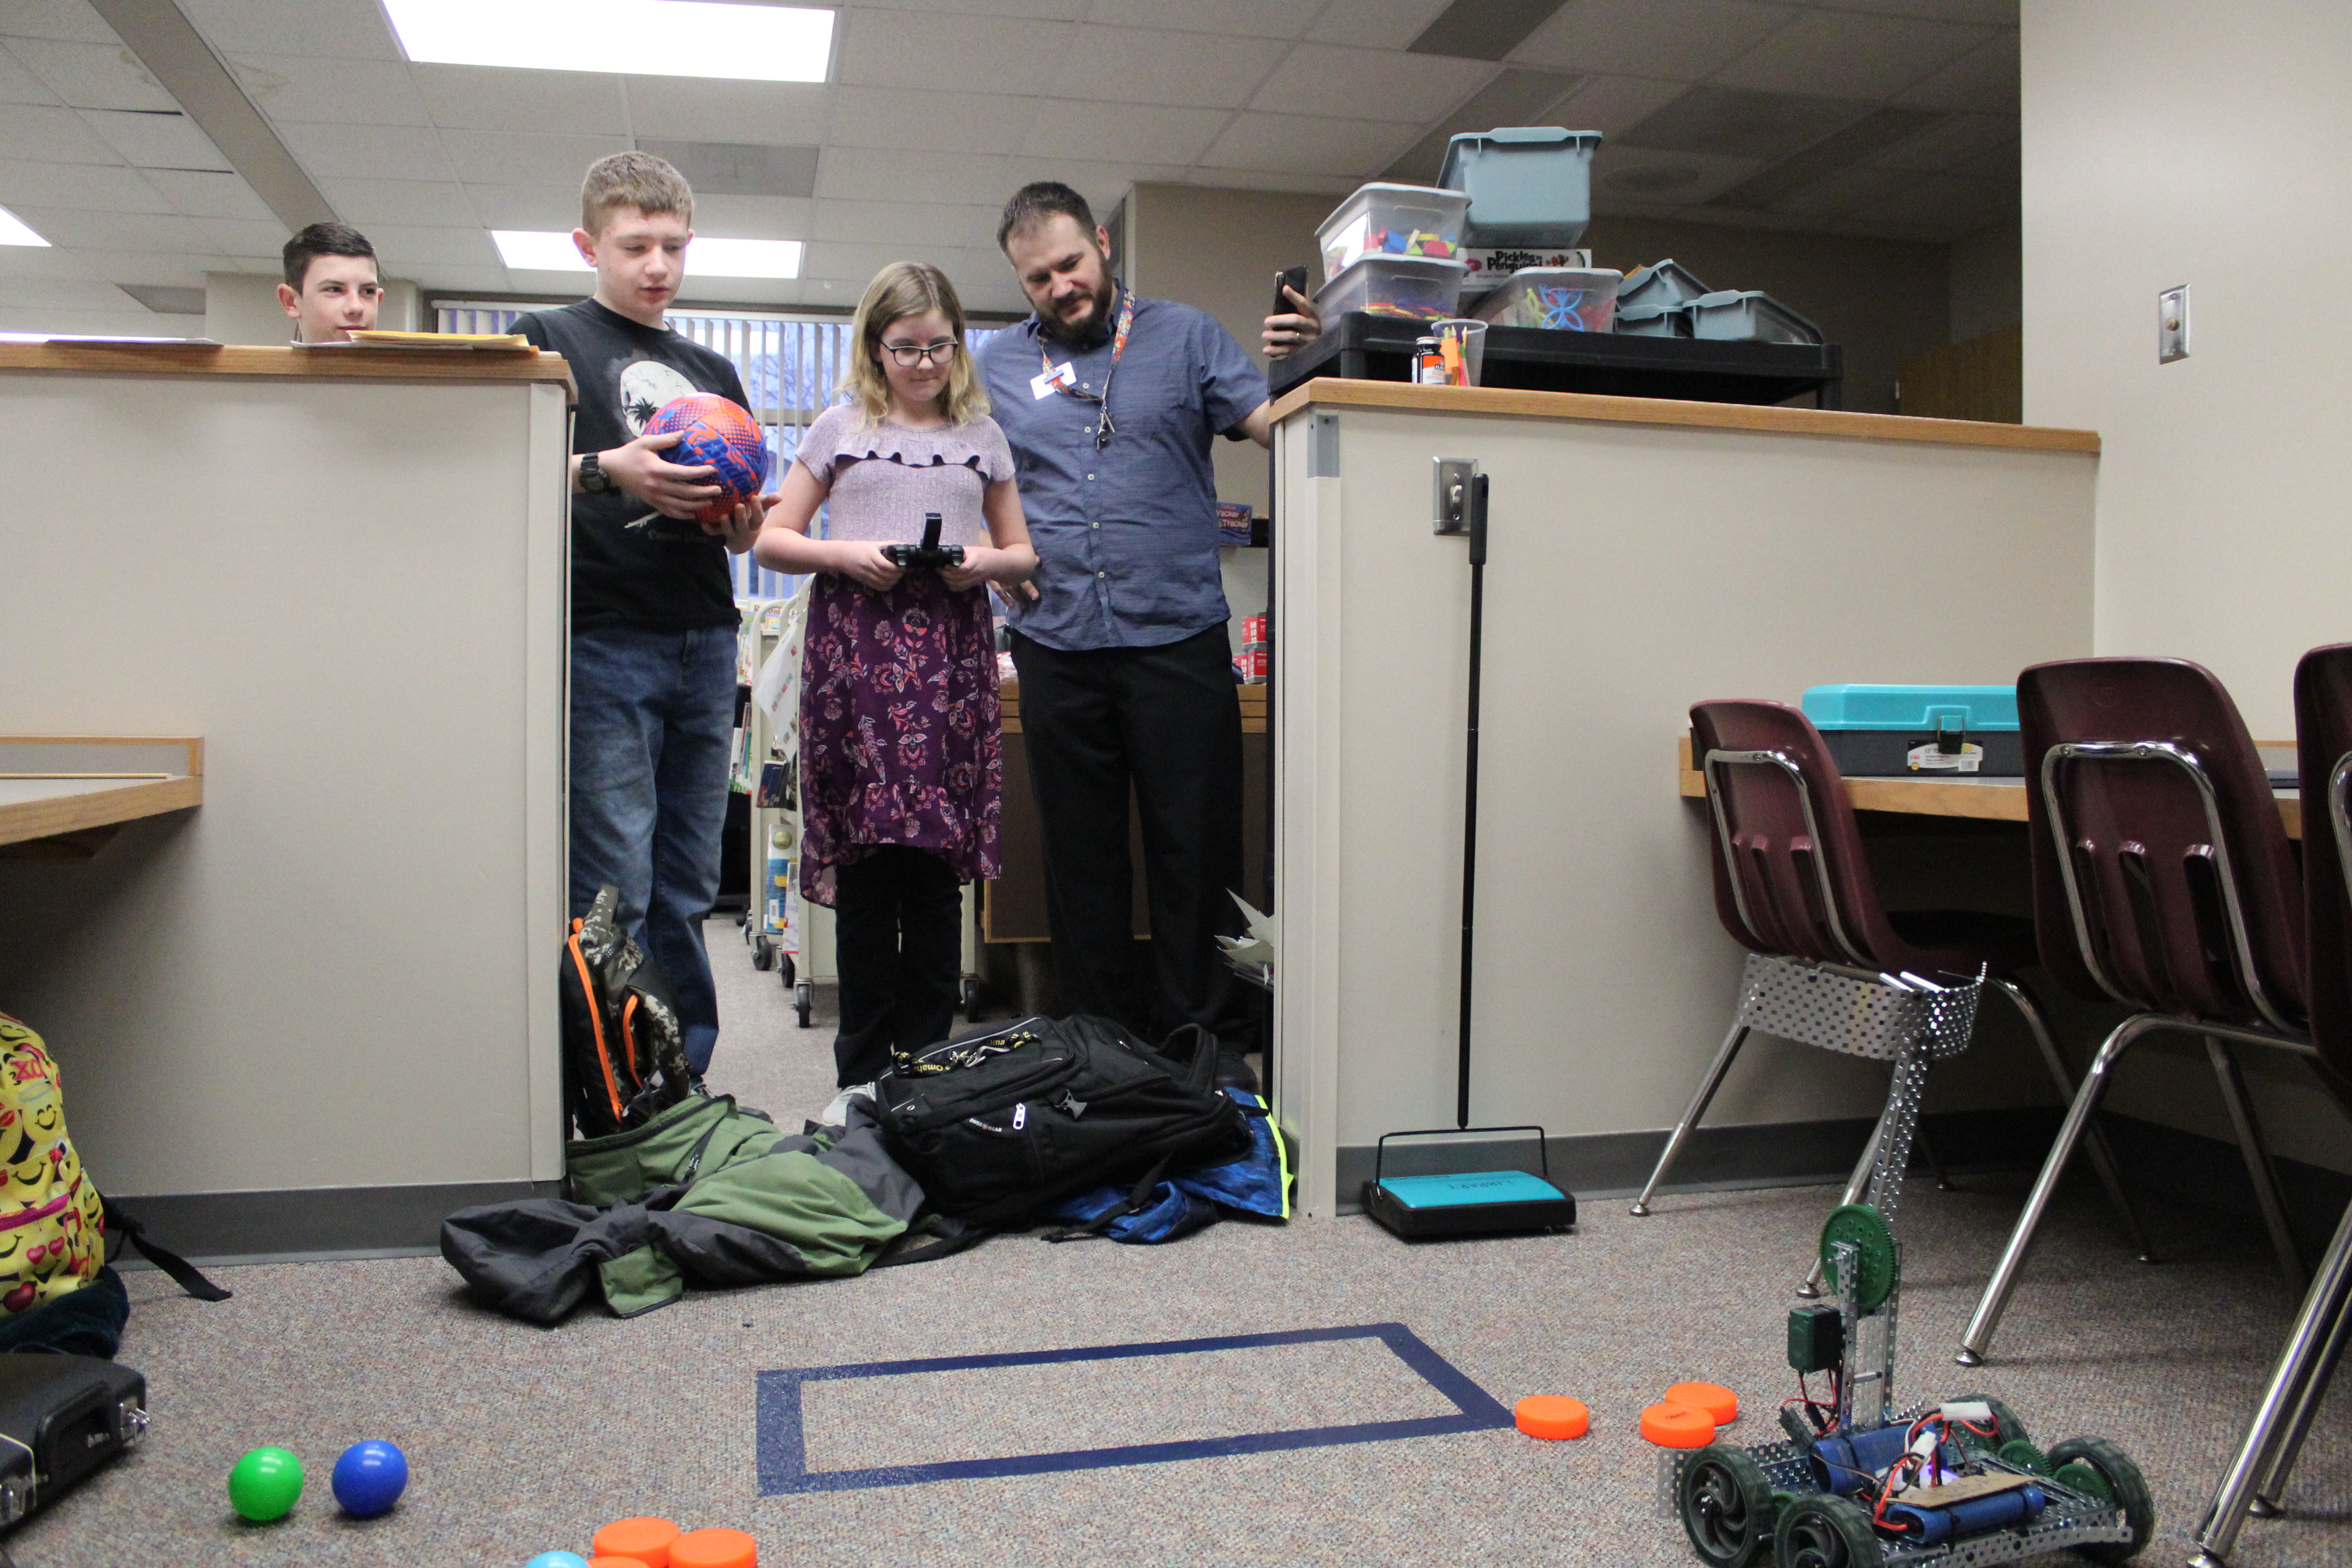 Rumsey Station, Trumble Park librarian leads successful robotic teams